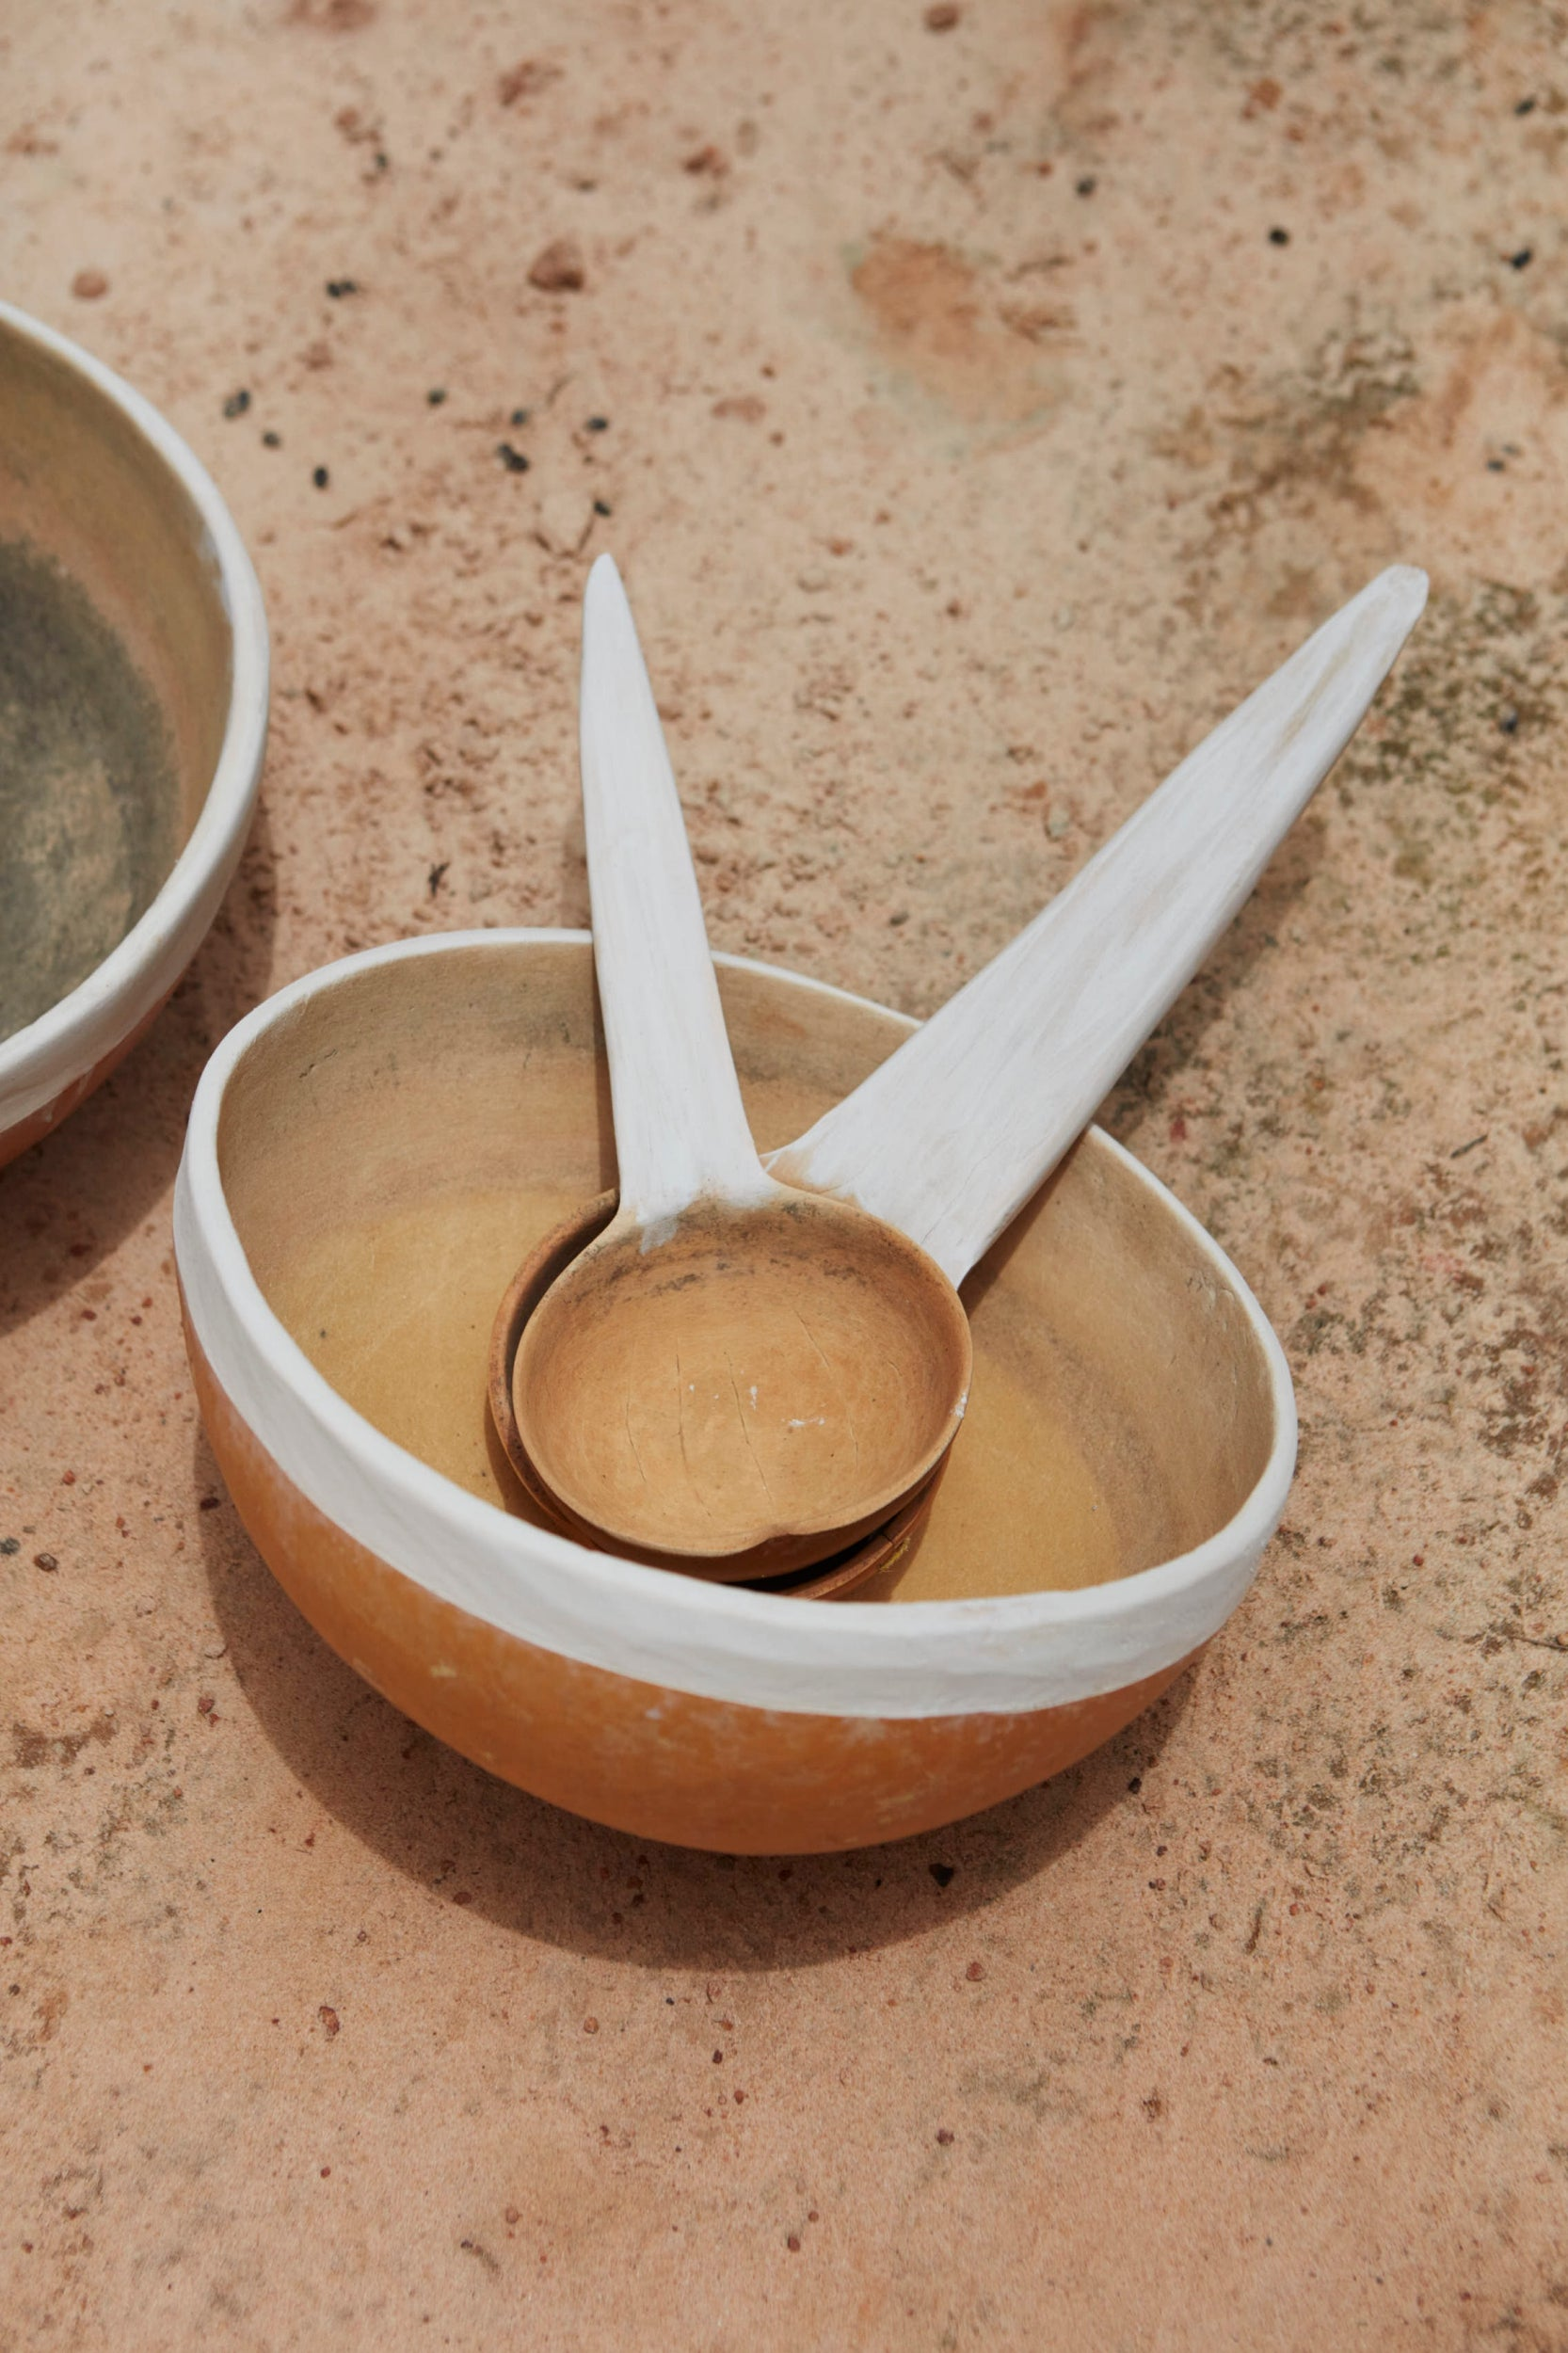 An empty bowl and spoon in Tombokiery village, Niger